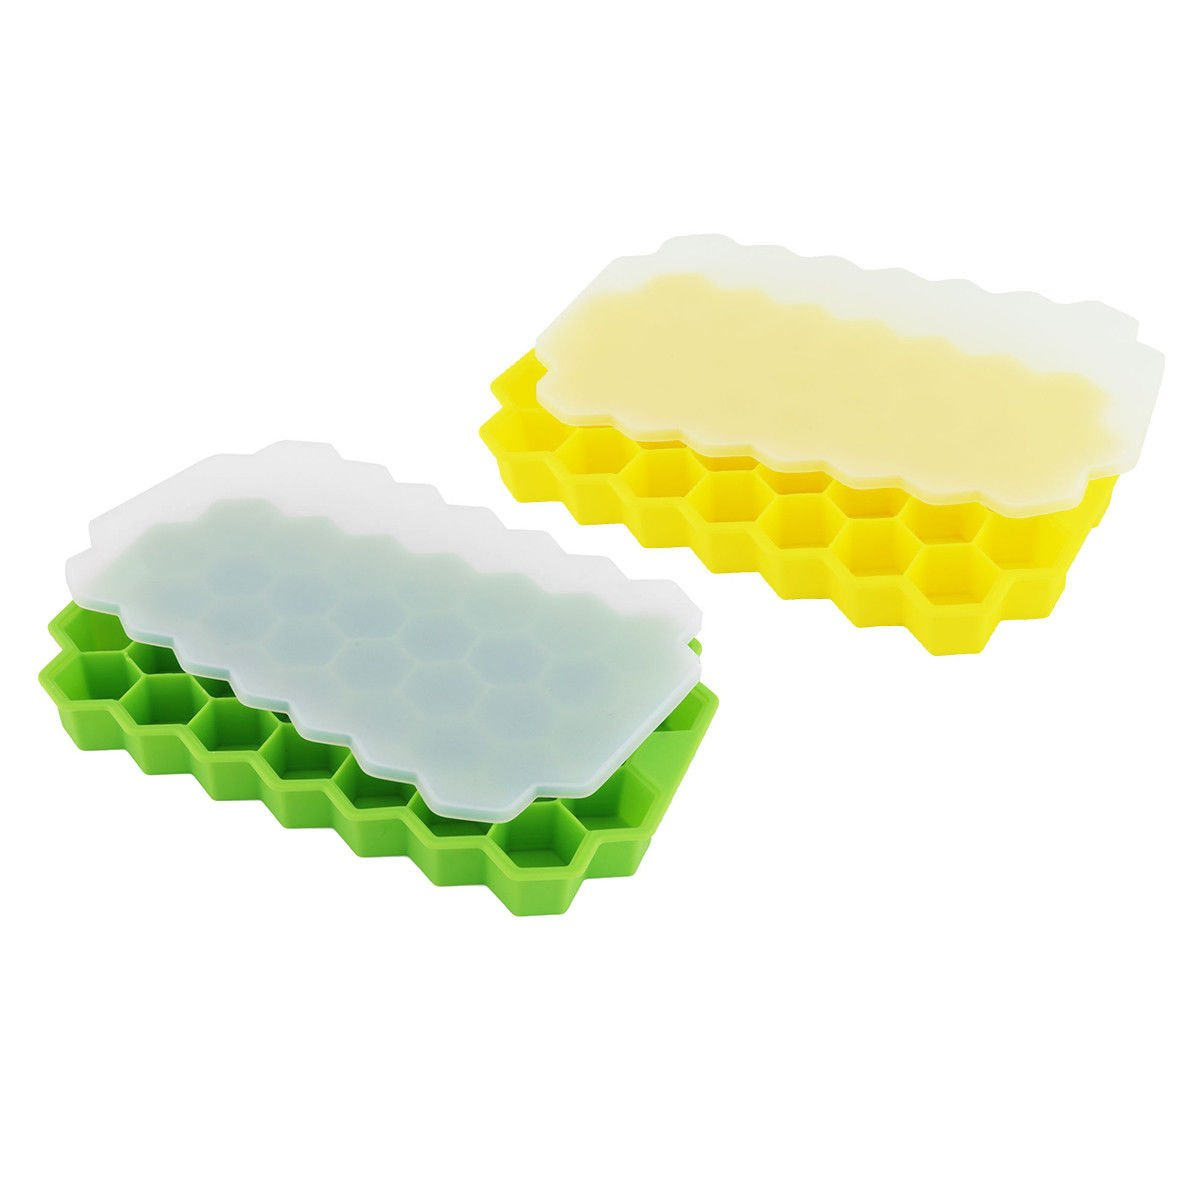 Ice Cube Trays -2 Pack Soft Silicone Ice Tray Mold 74 Small Cubes with Non-Spill Lid Stackable for Whiskey Squares, Candy Pudding, Juice Chocolate Mold or Cocktails Particles for Summer, Party and H HOT JUNE